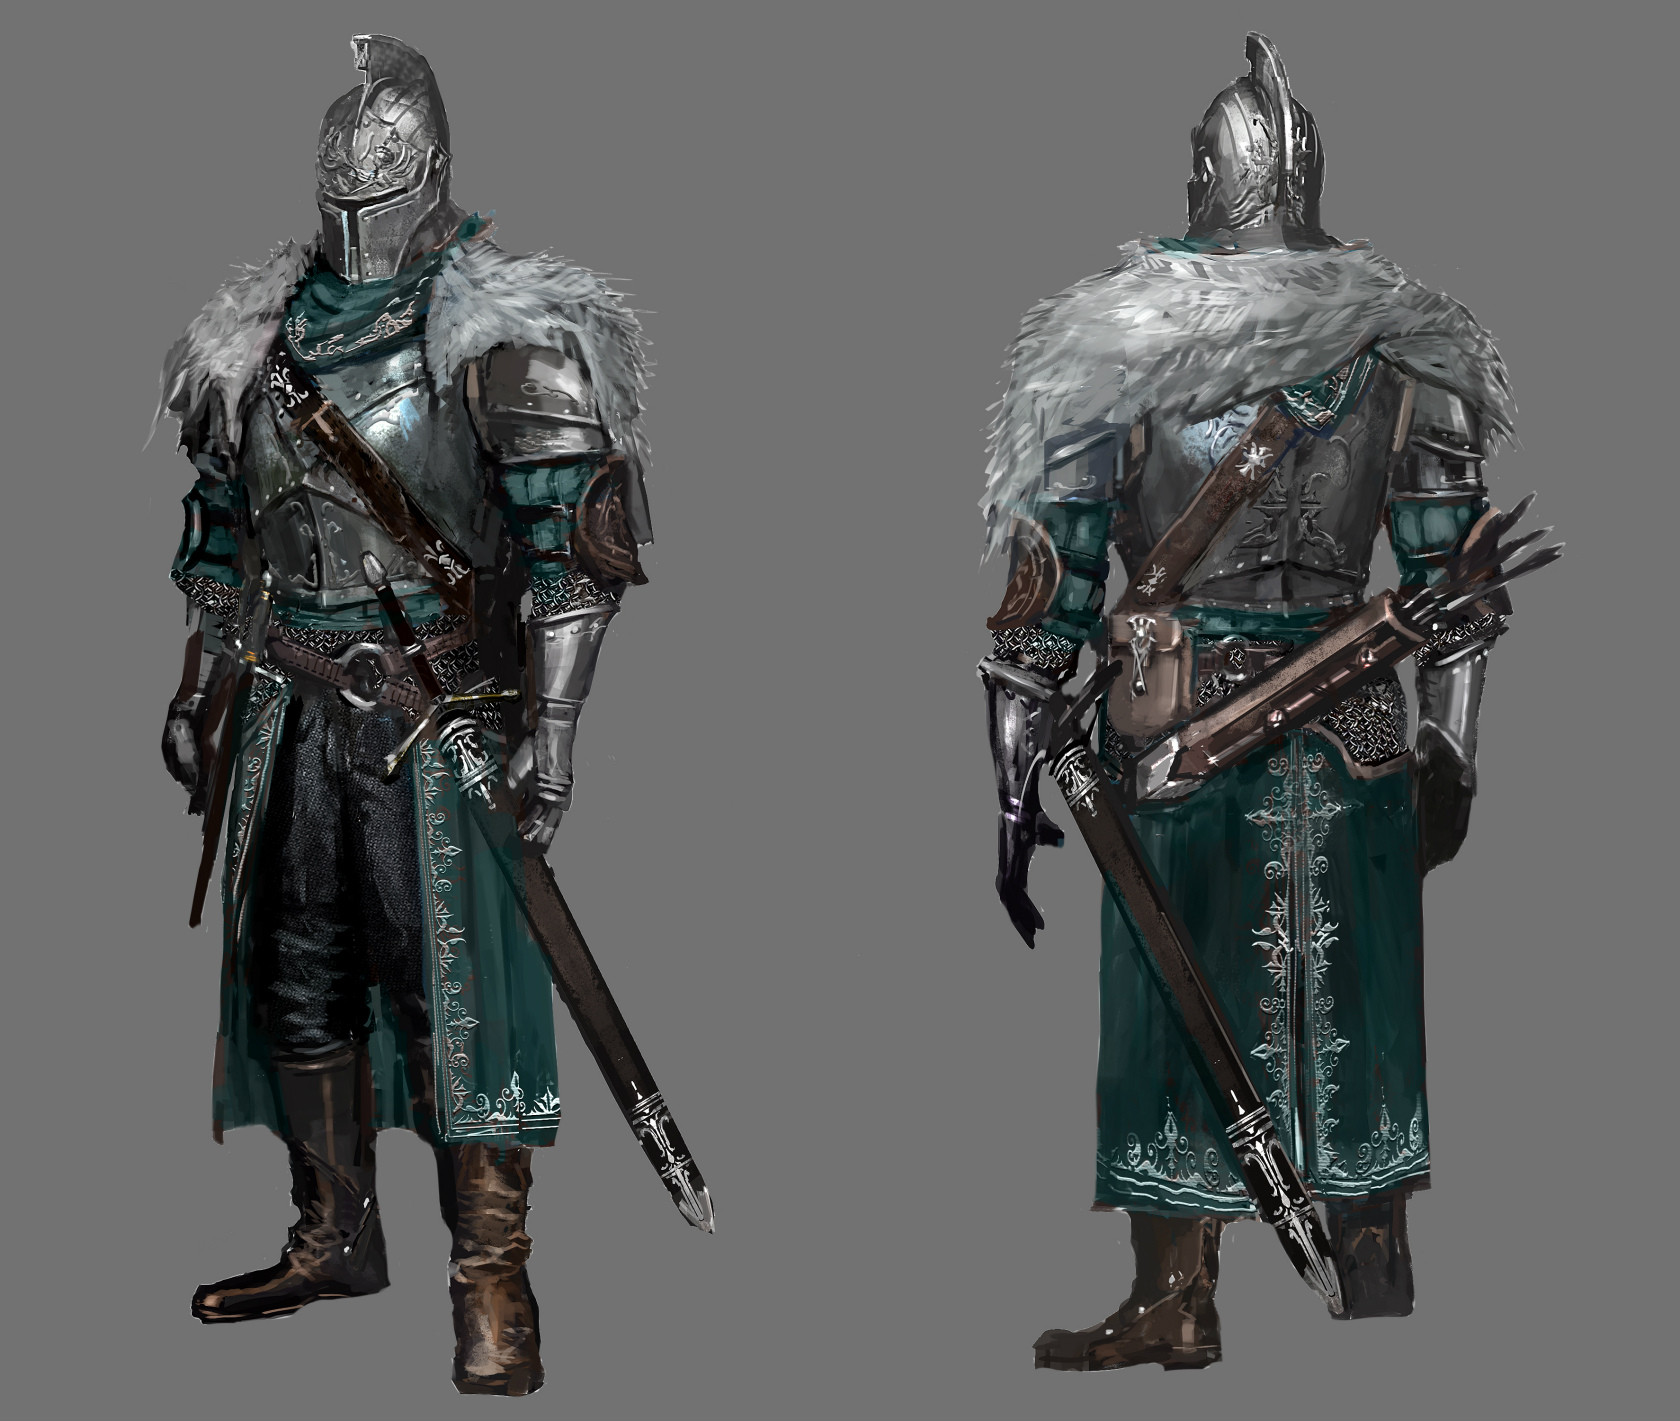 https://www.stratege.ru/misc/news/VE/DarkSouls/dark_souls_ii_concept_03.jpg